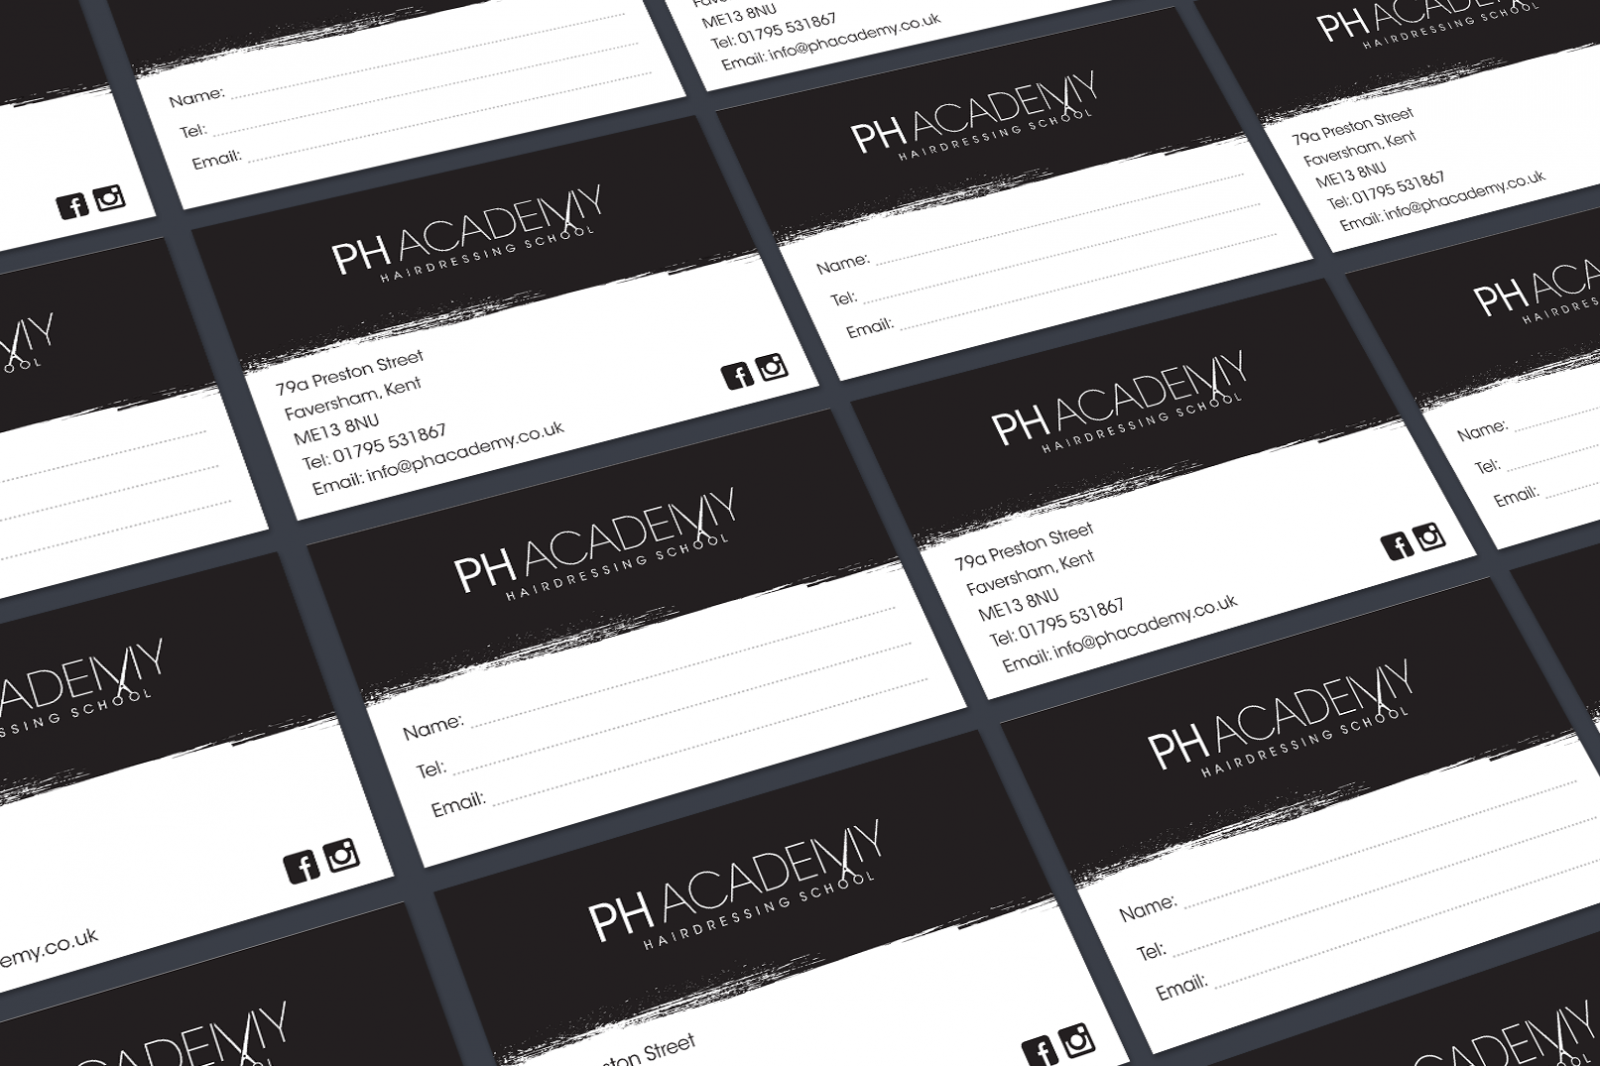 ph-academy-card-corporate-identity-agency-graphic-design-canterbury.png